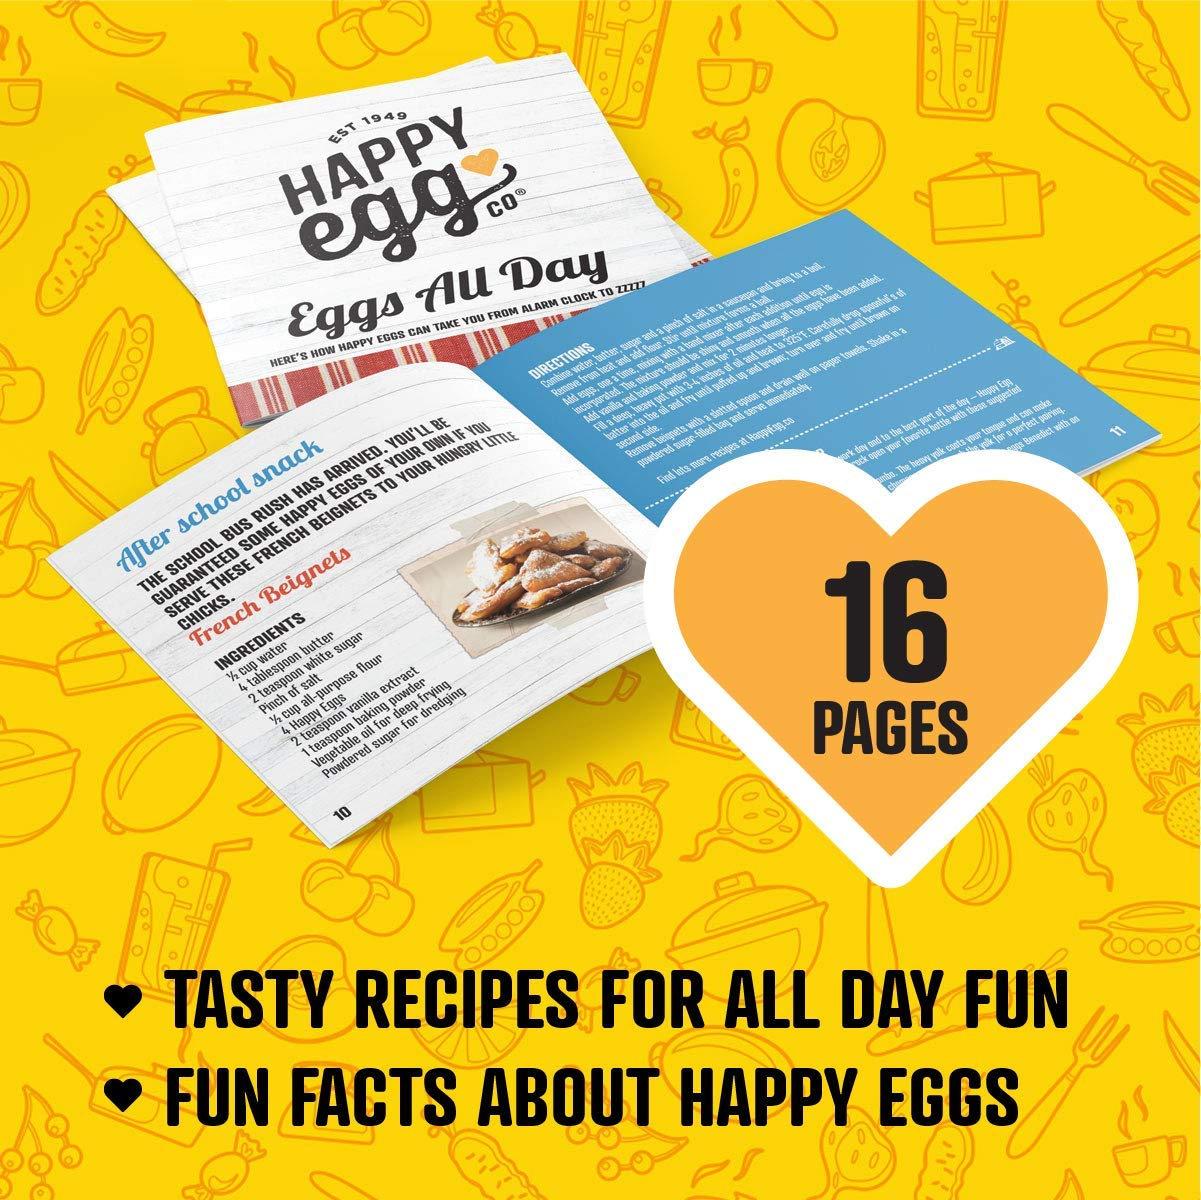 Happy Egg Pan by Choosy Chef - Nonstick 4-Cup Frying Pan, Spatula & Happy Egg Recipe Book Included by Choosy Chef (Image #3)